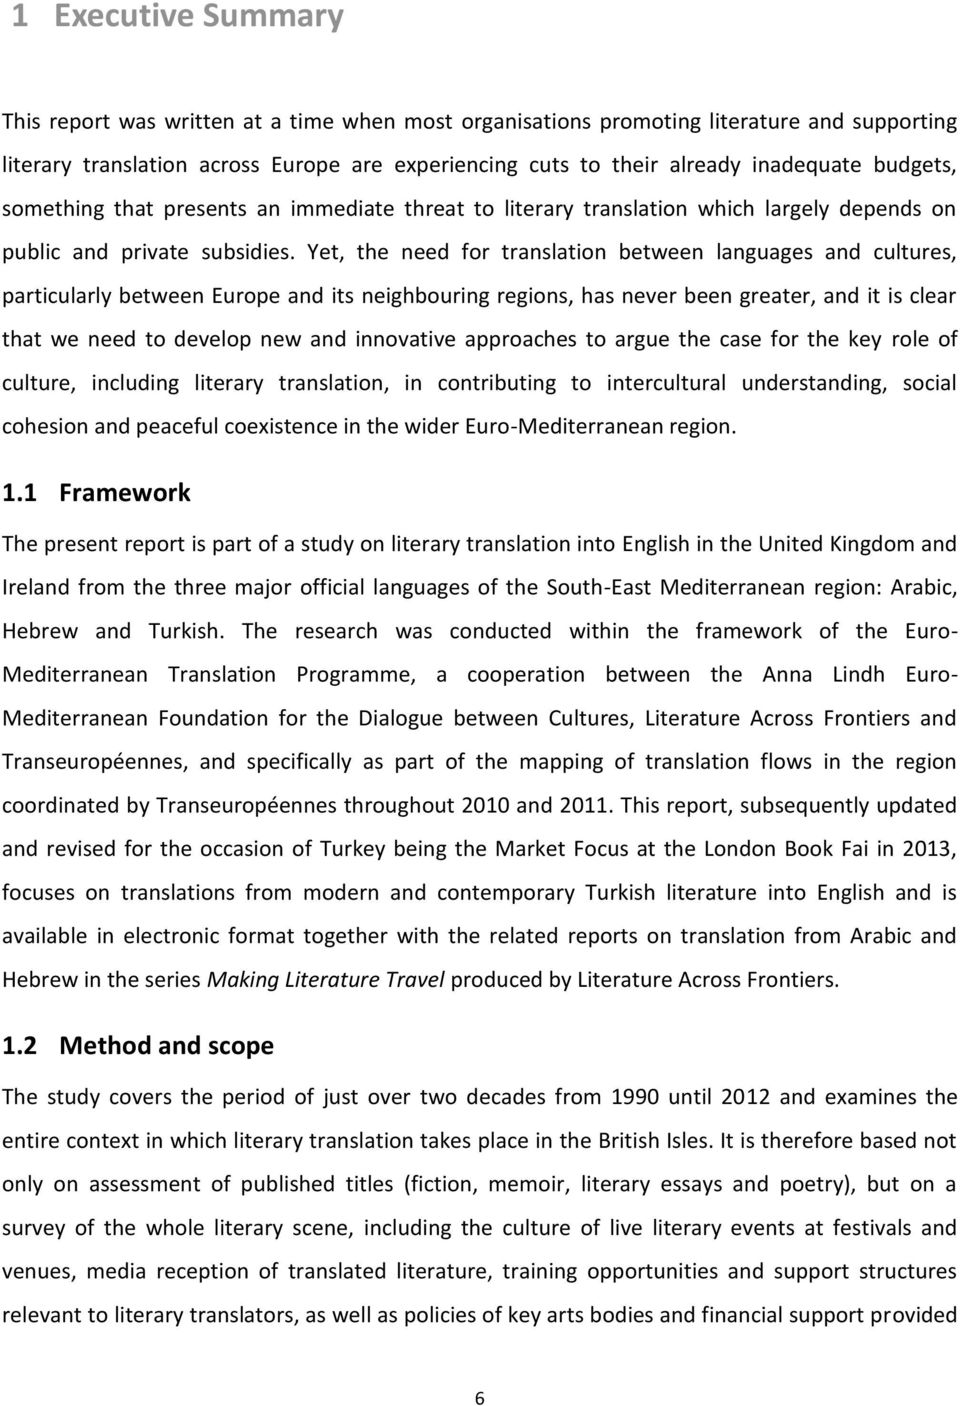 Yet, the need for translation between languages and cultures, particularly between Europe and its neighbouring regions, has never been greater, and it is clear that we need to develop new and